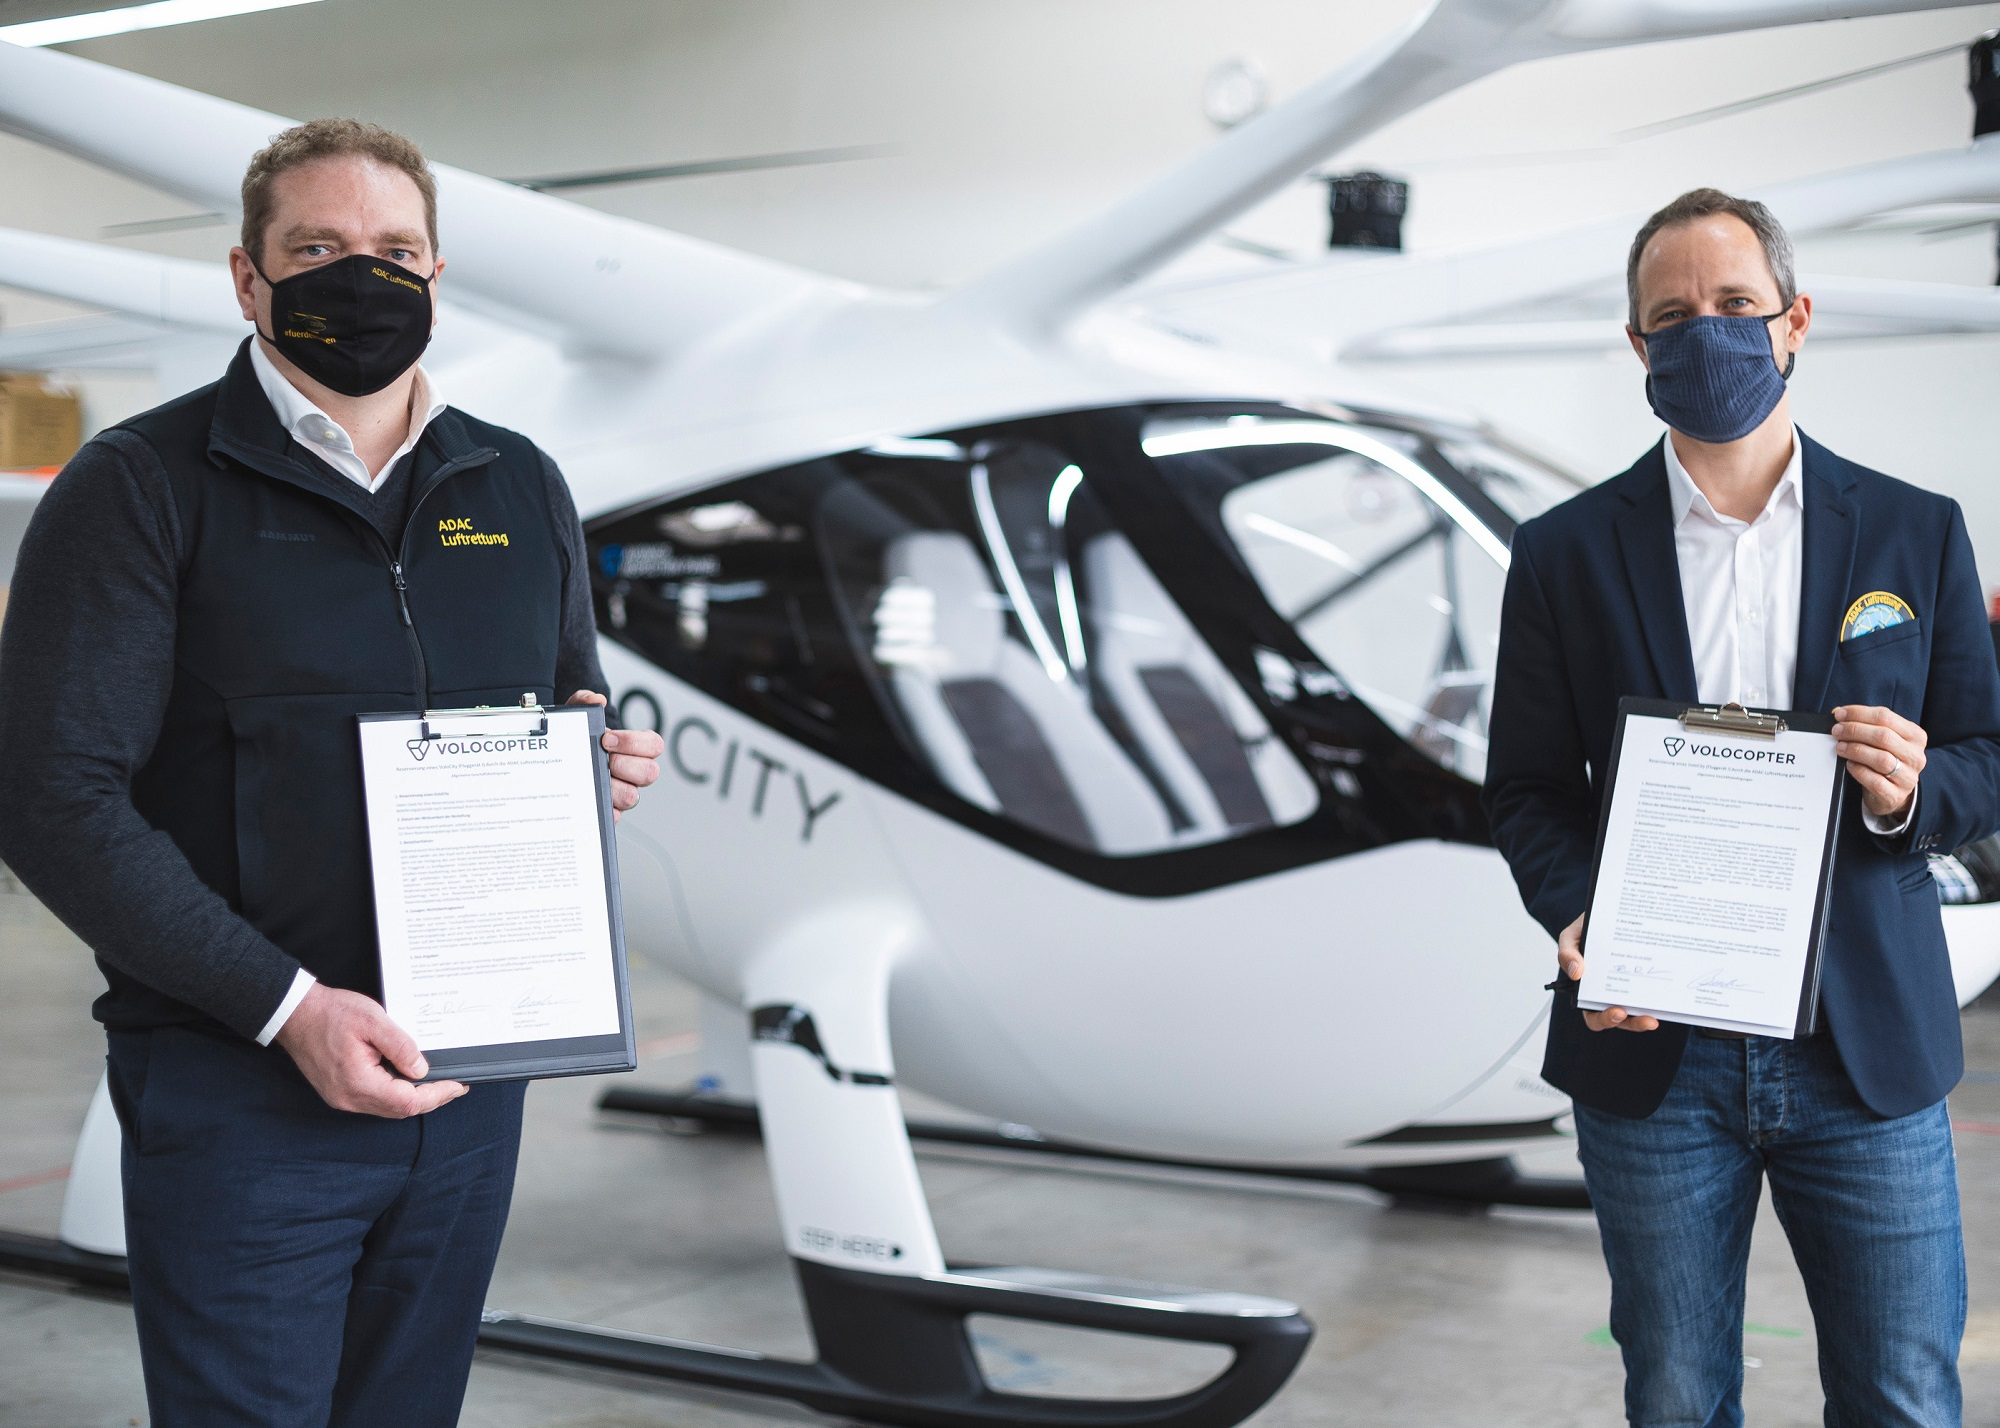 Volocopter sale to ADAC Luftrettung